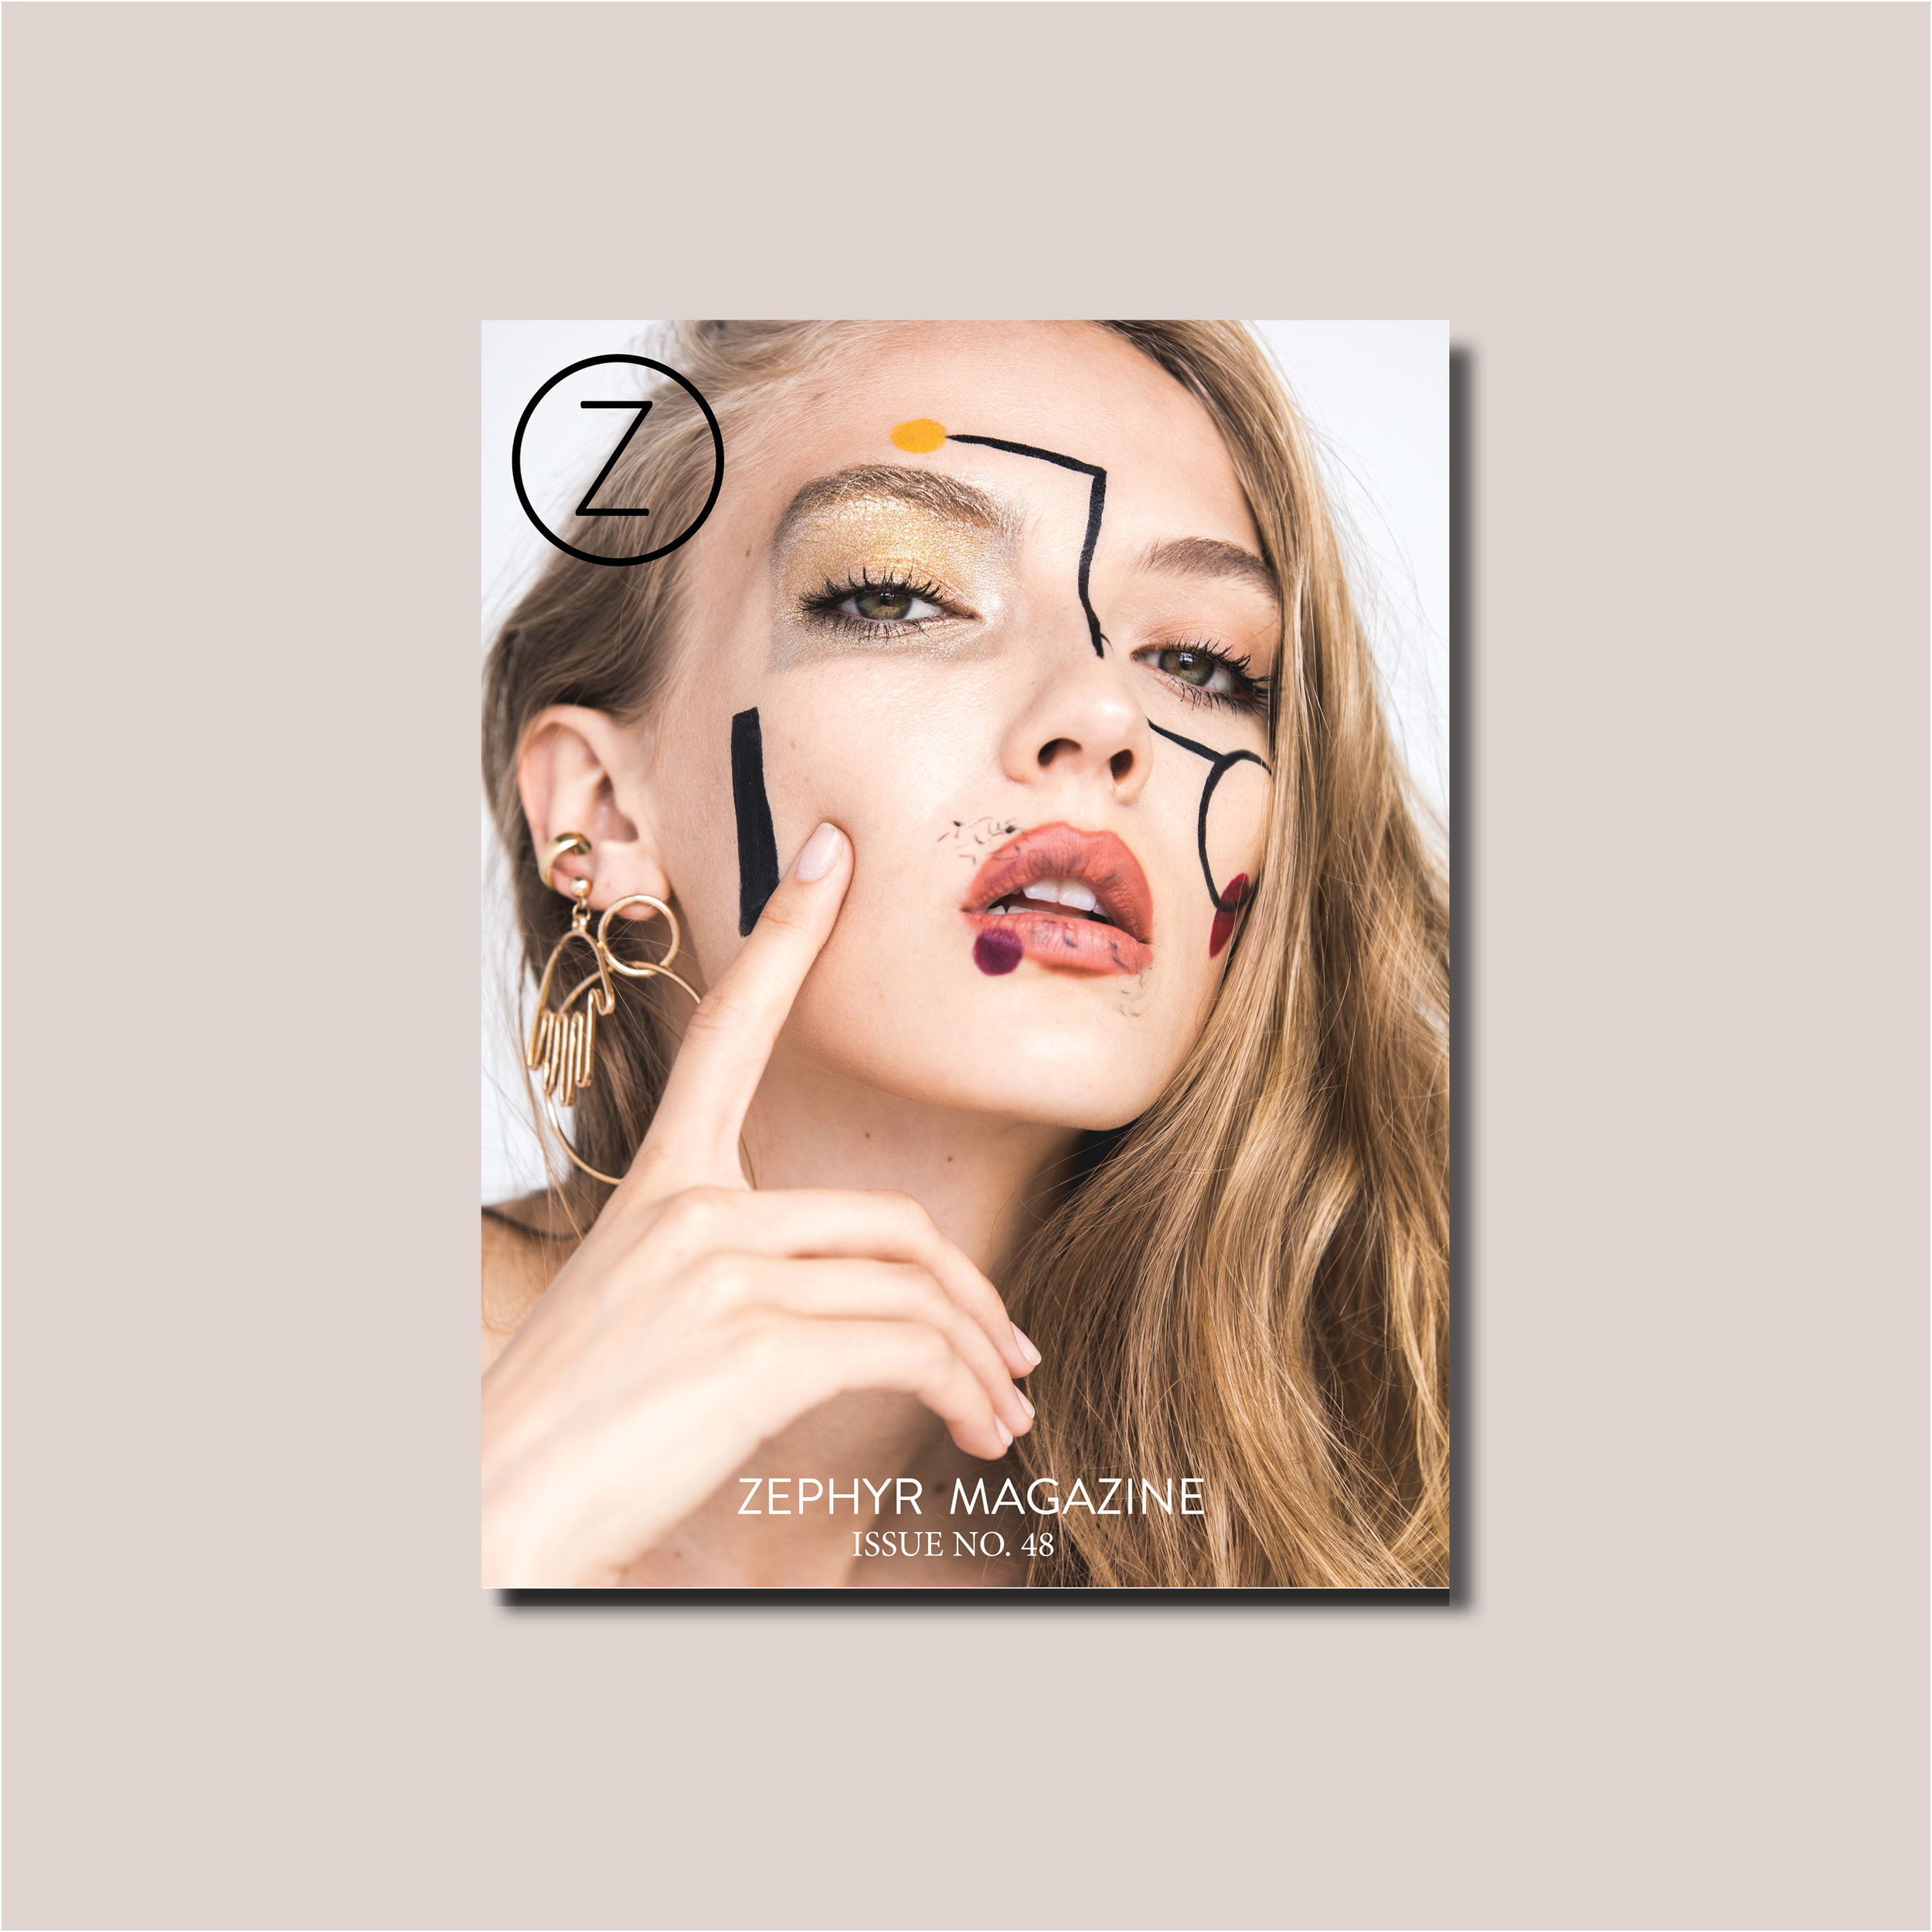 ISSUE No. 48- THE BOLD ISSUE  September 2019  Published 9/1/2019   Purchase